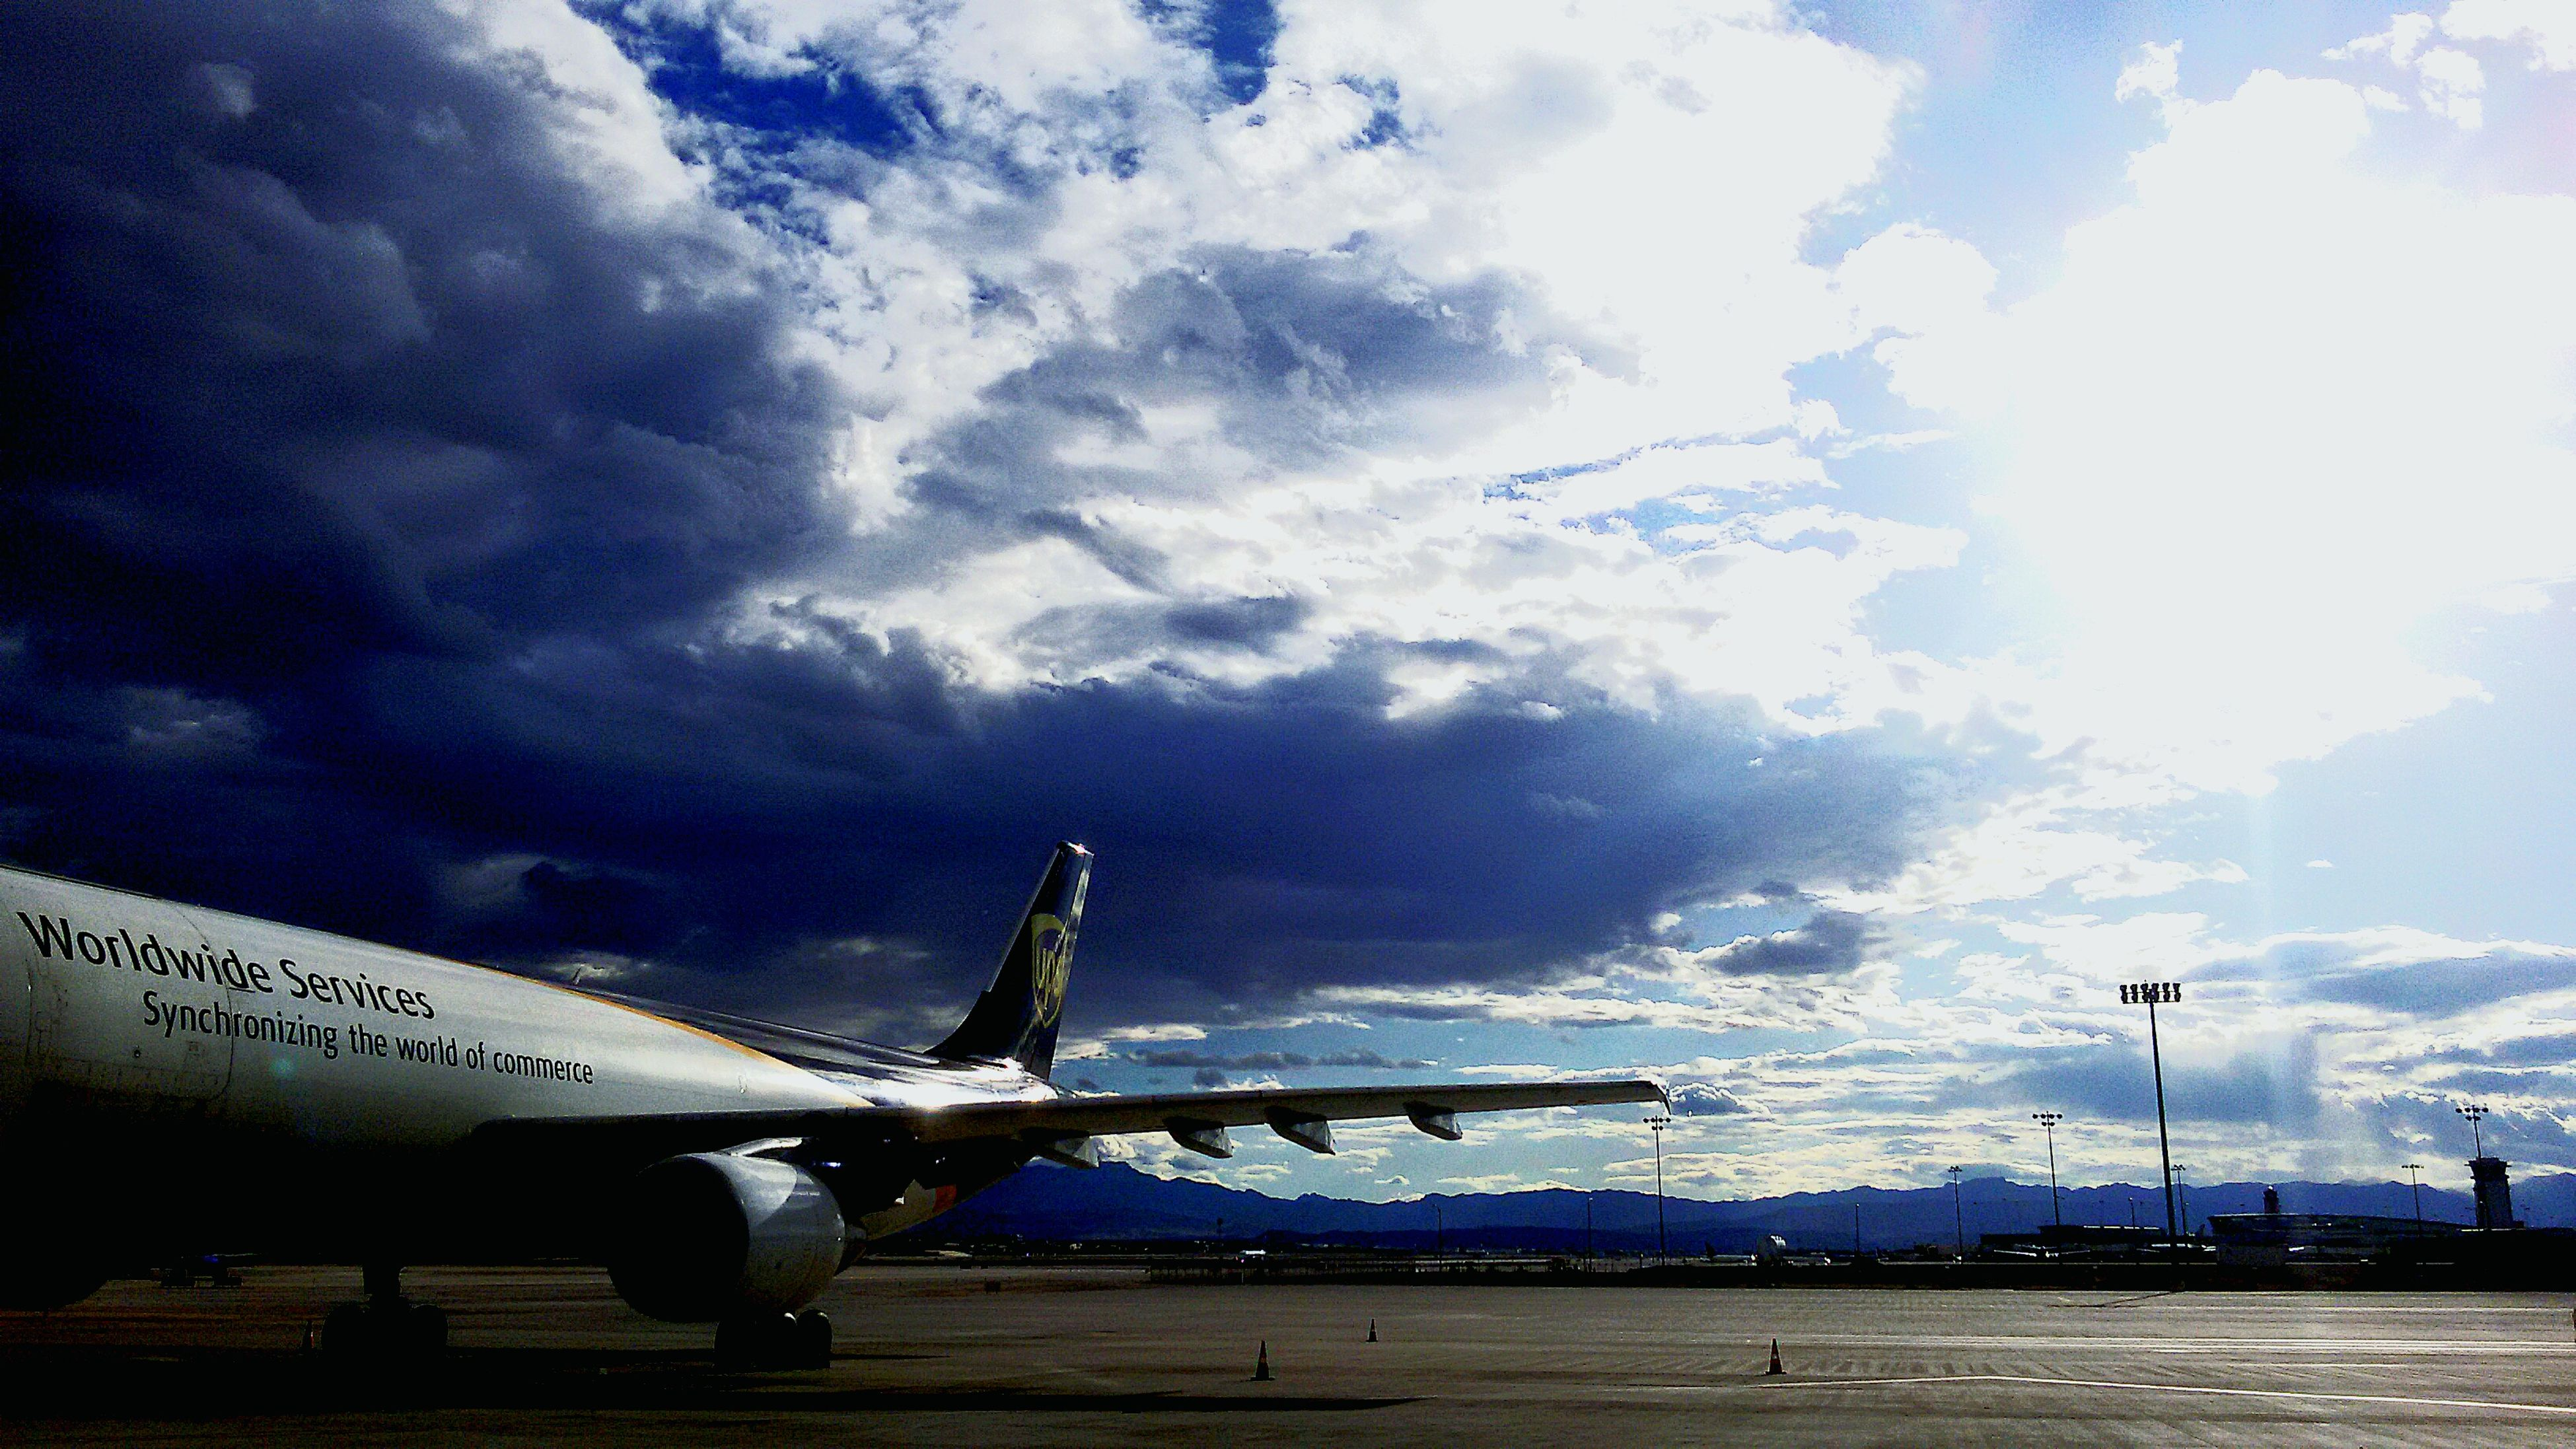 transportation, sky, mode of transport, cloud - sky, airplane, flying, air vehicle, cloudy, cloud, low angle view, mid-air, travel, nature, day, on the move, outdoors, sunlight, aircraft wing, car, no people